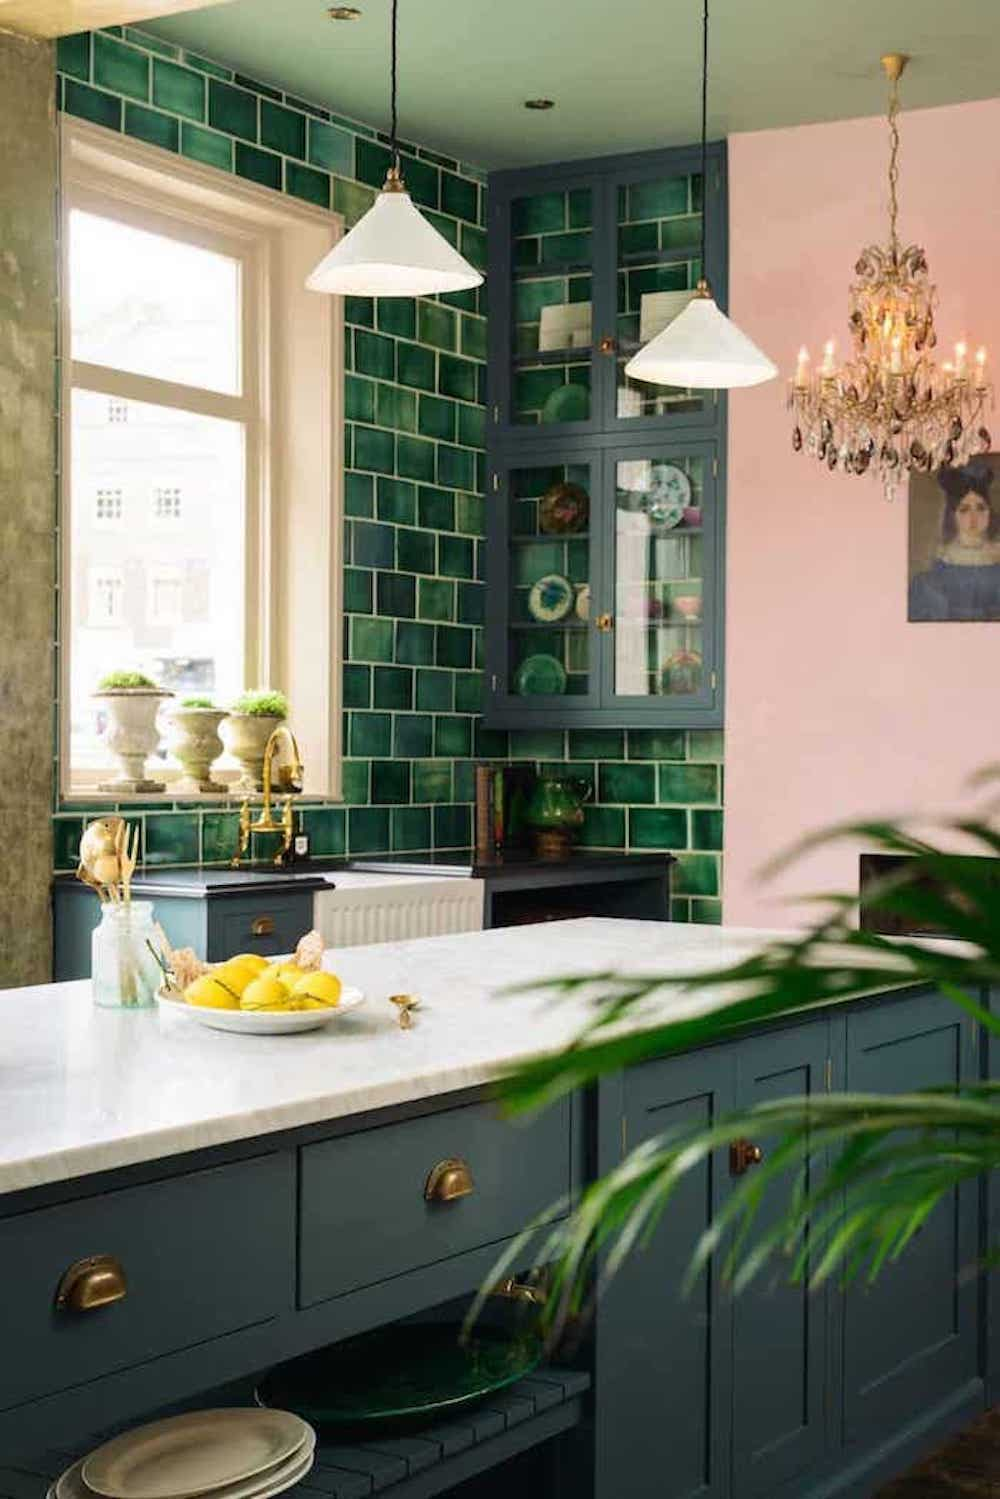 green 1930s tiles against pink walls